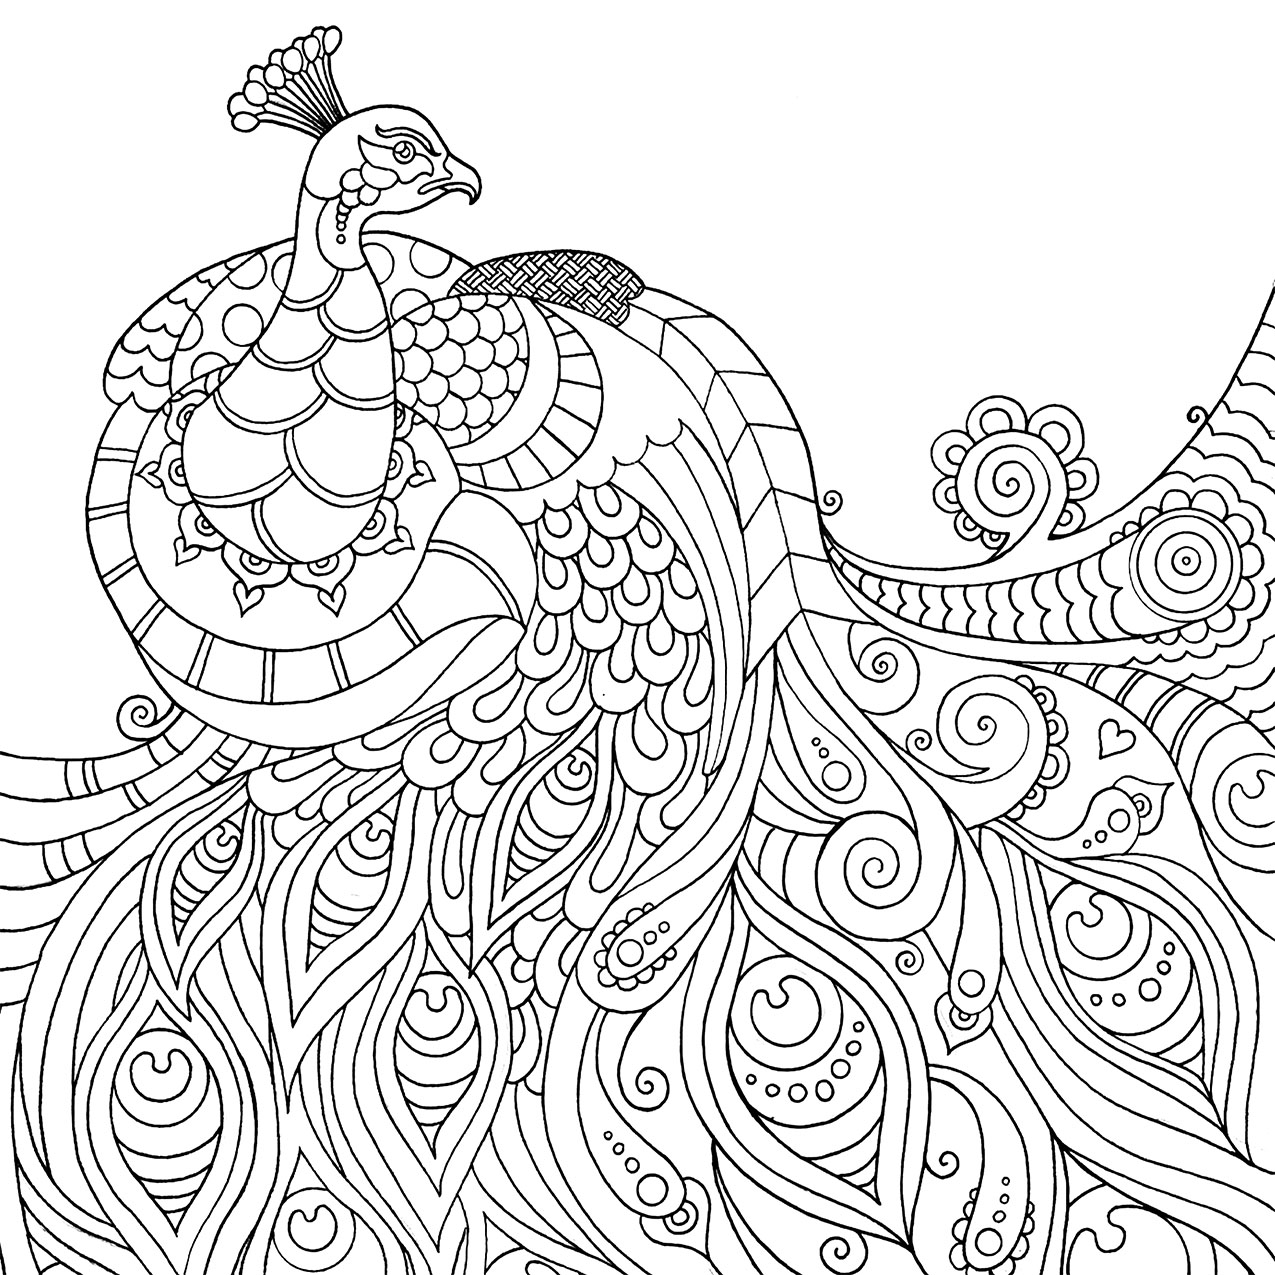 Relax coloring #2, Download drawings